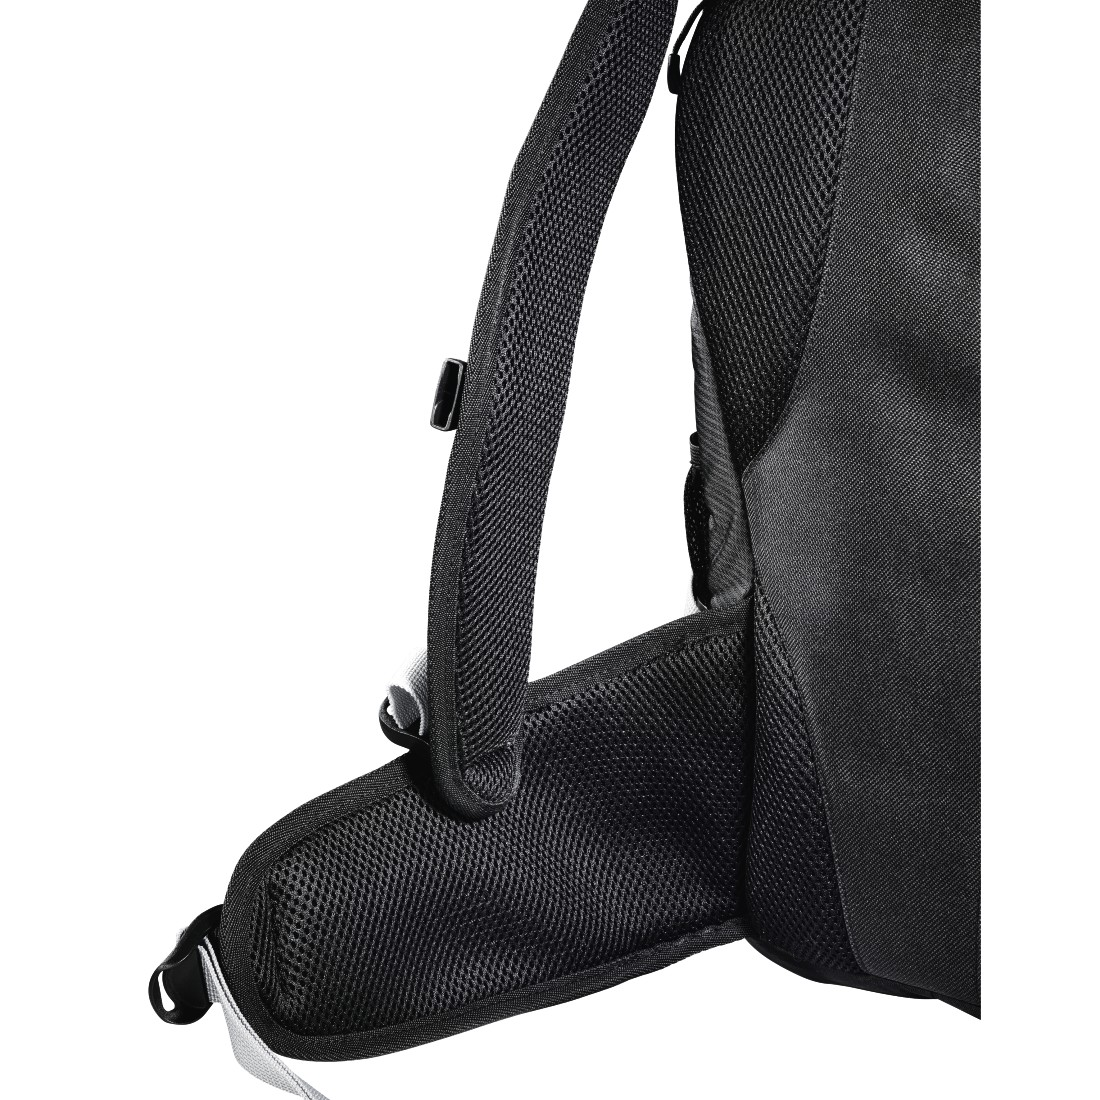 dex4 High-Res Detail 4 - Hama, Trekkingtour Camera Backpack, 140, black